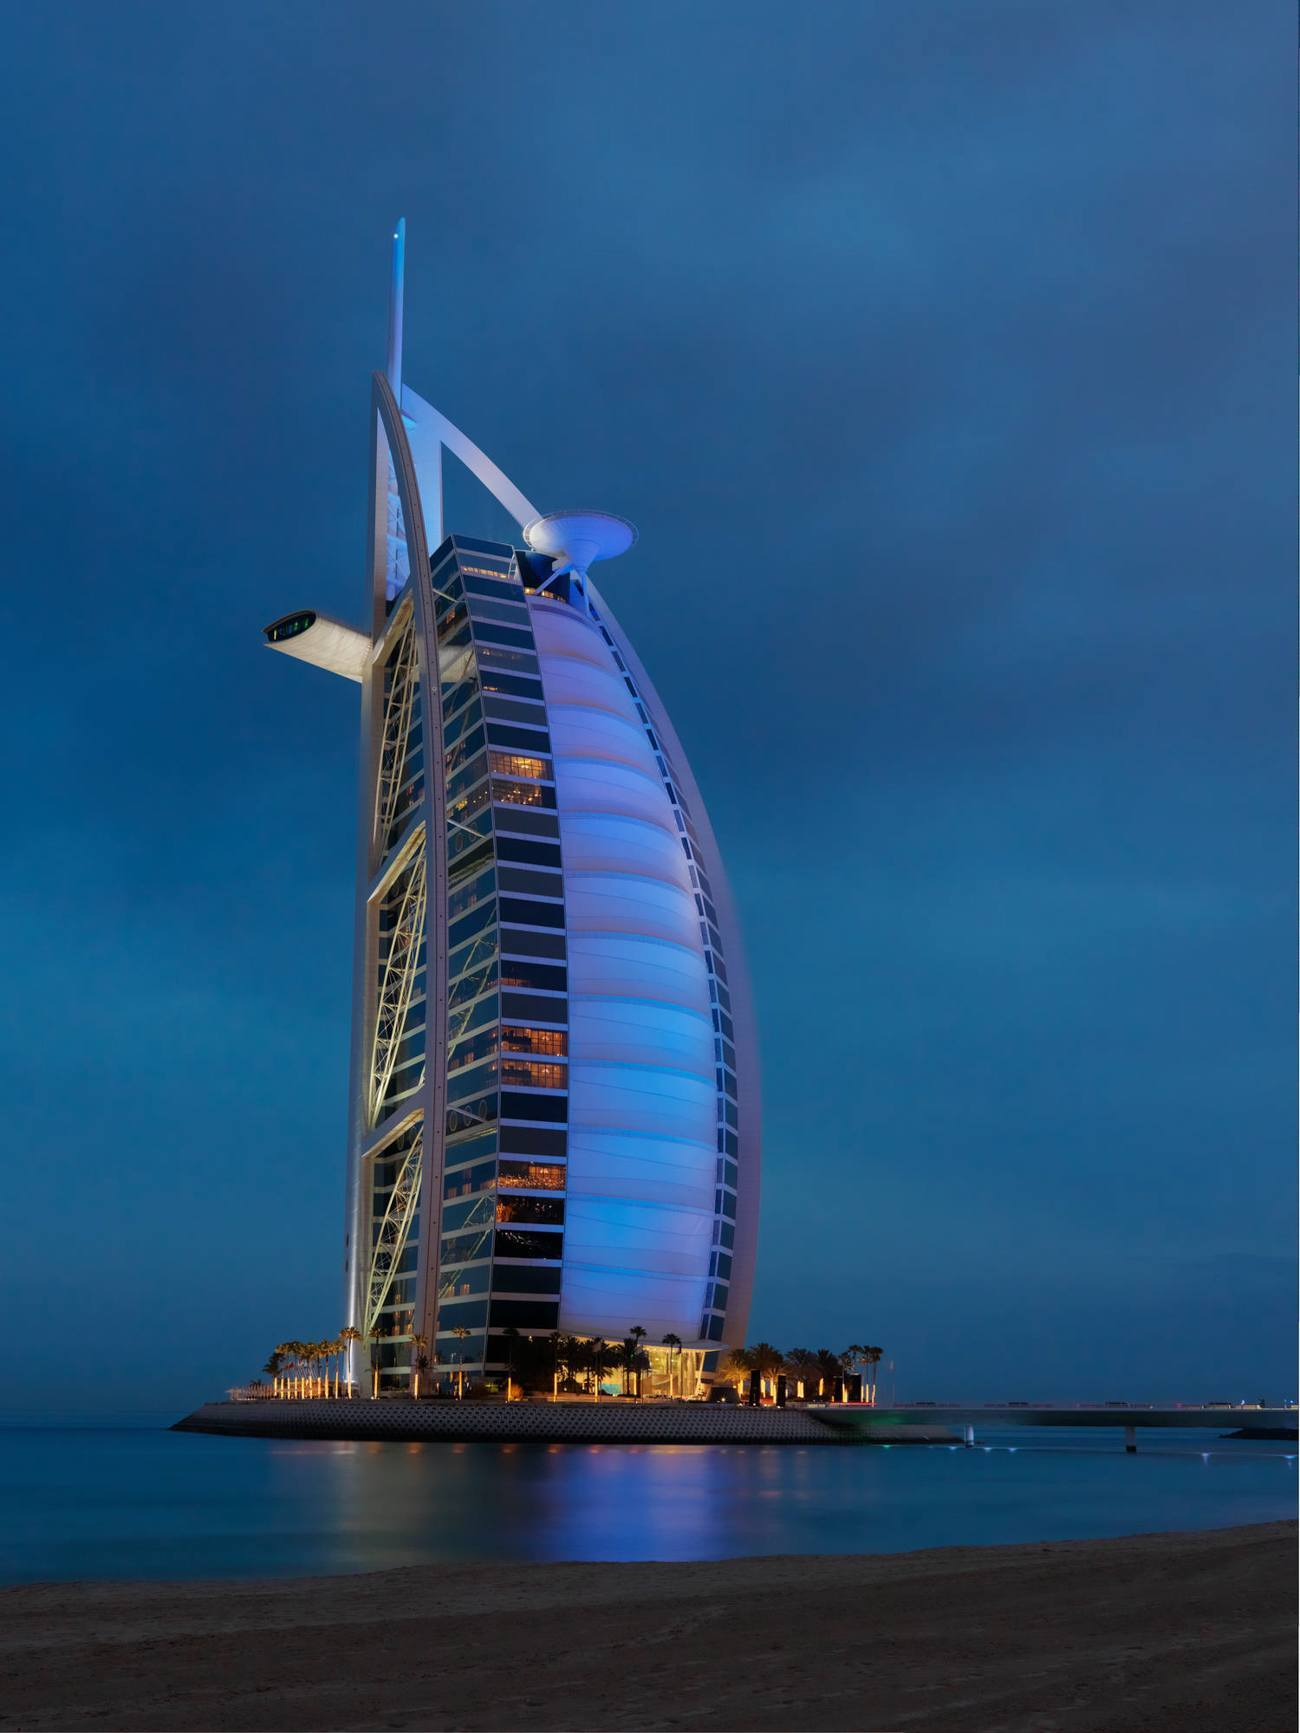 The seven-star Burj al Arab in Dubai